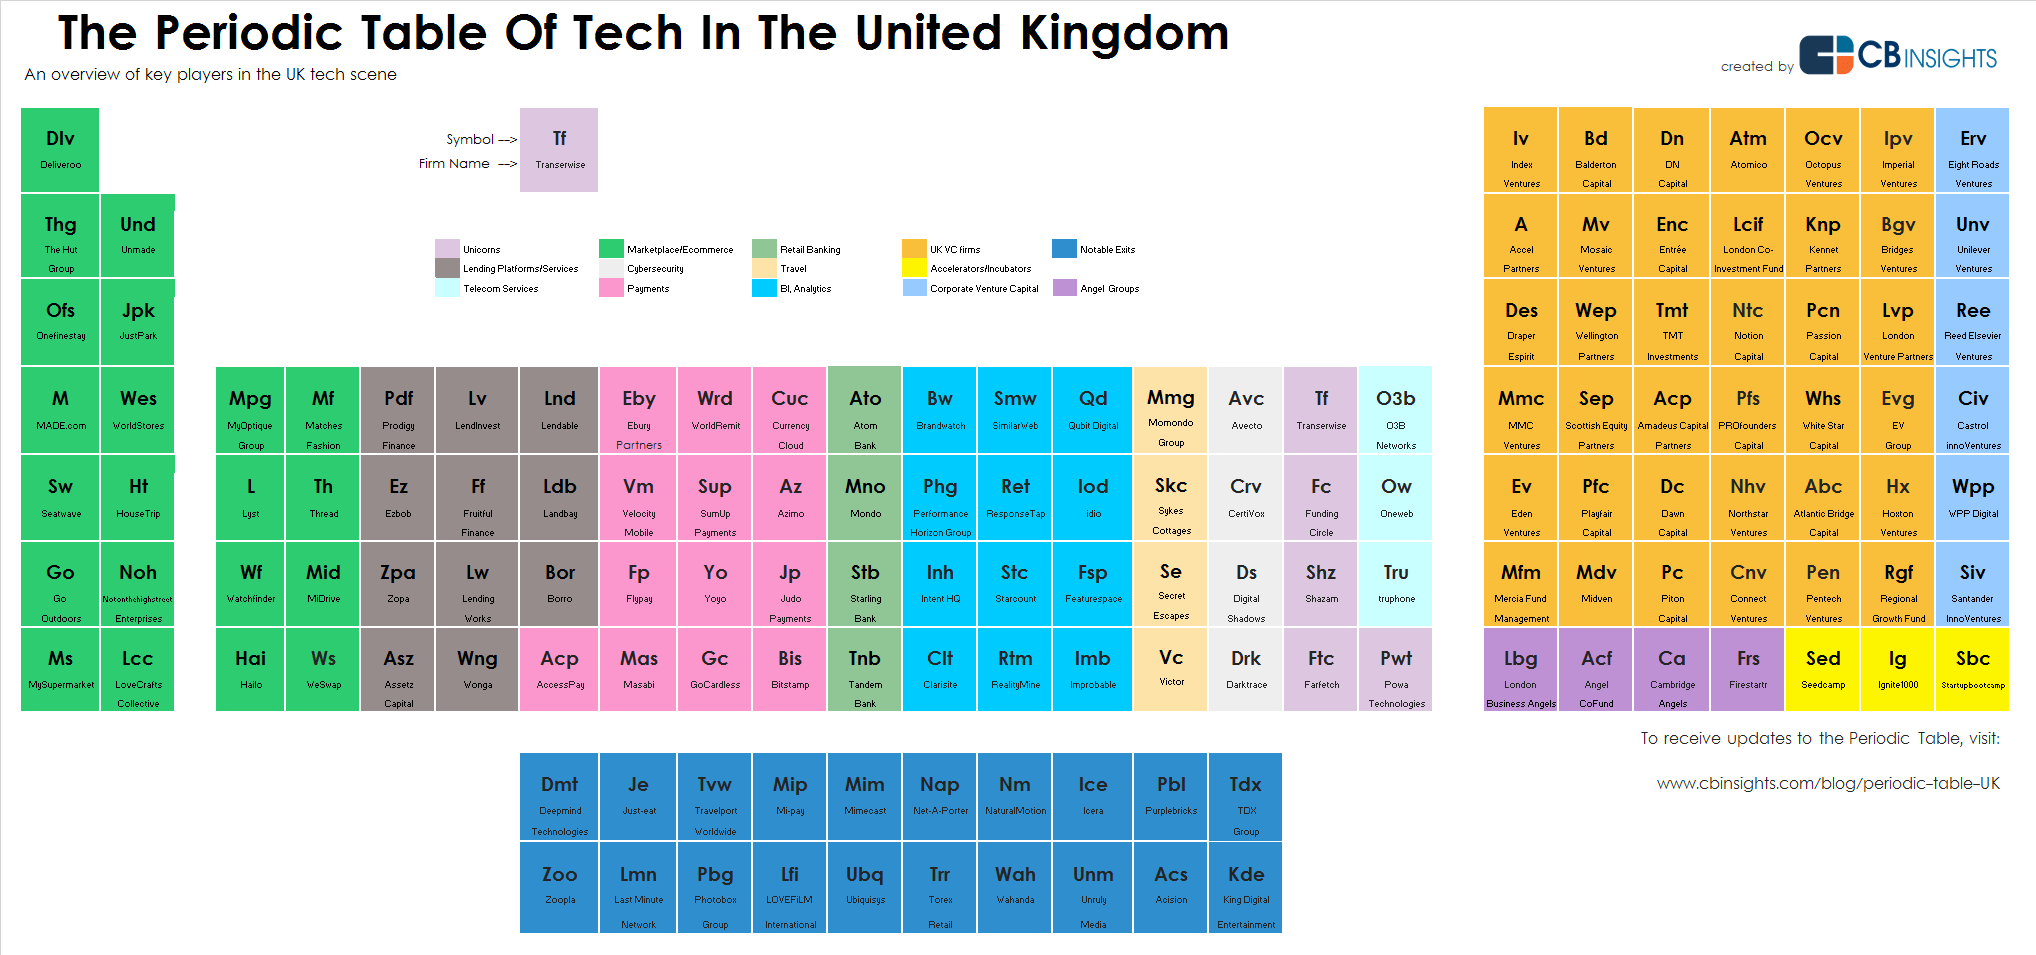 The Periodic Table Of Tech In The United Kingdom